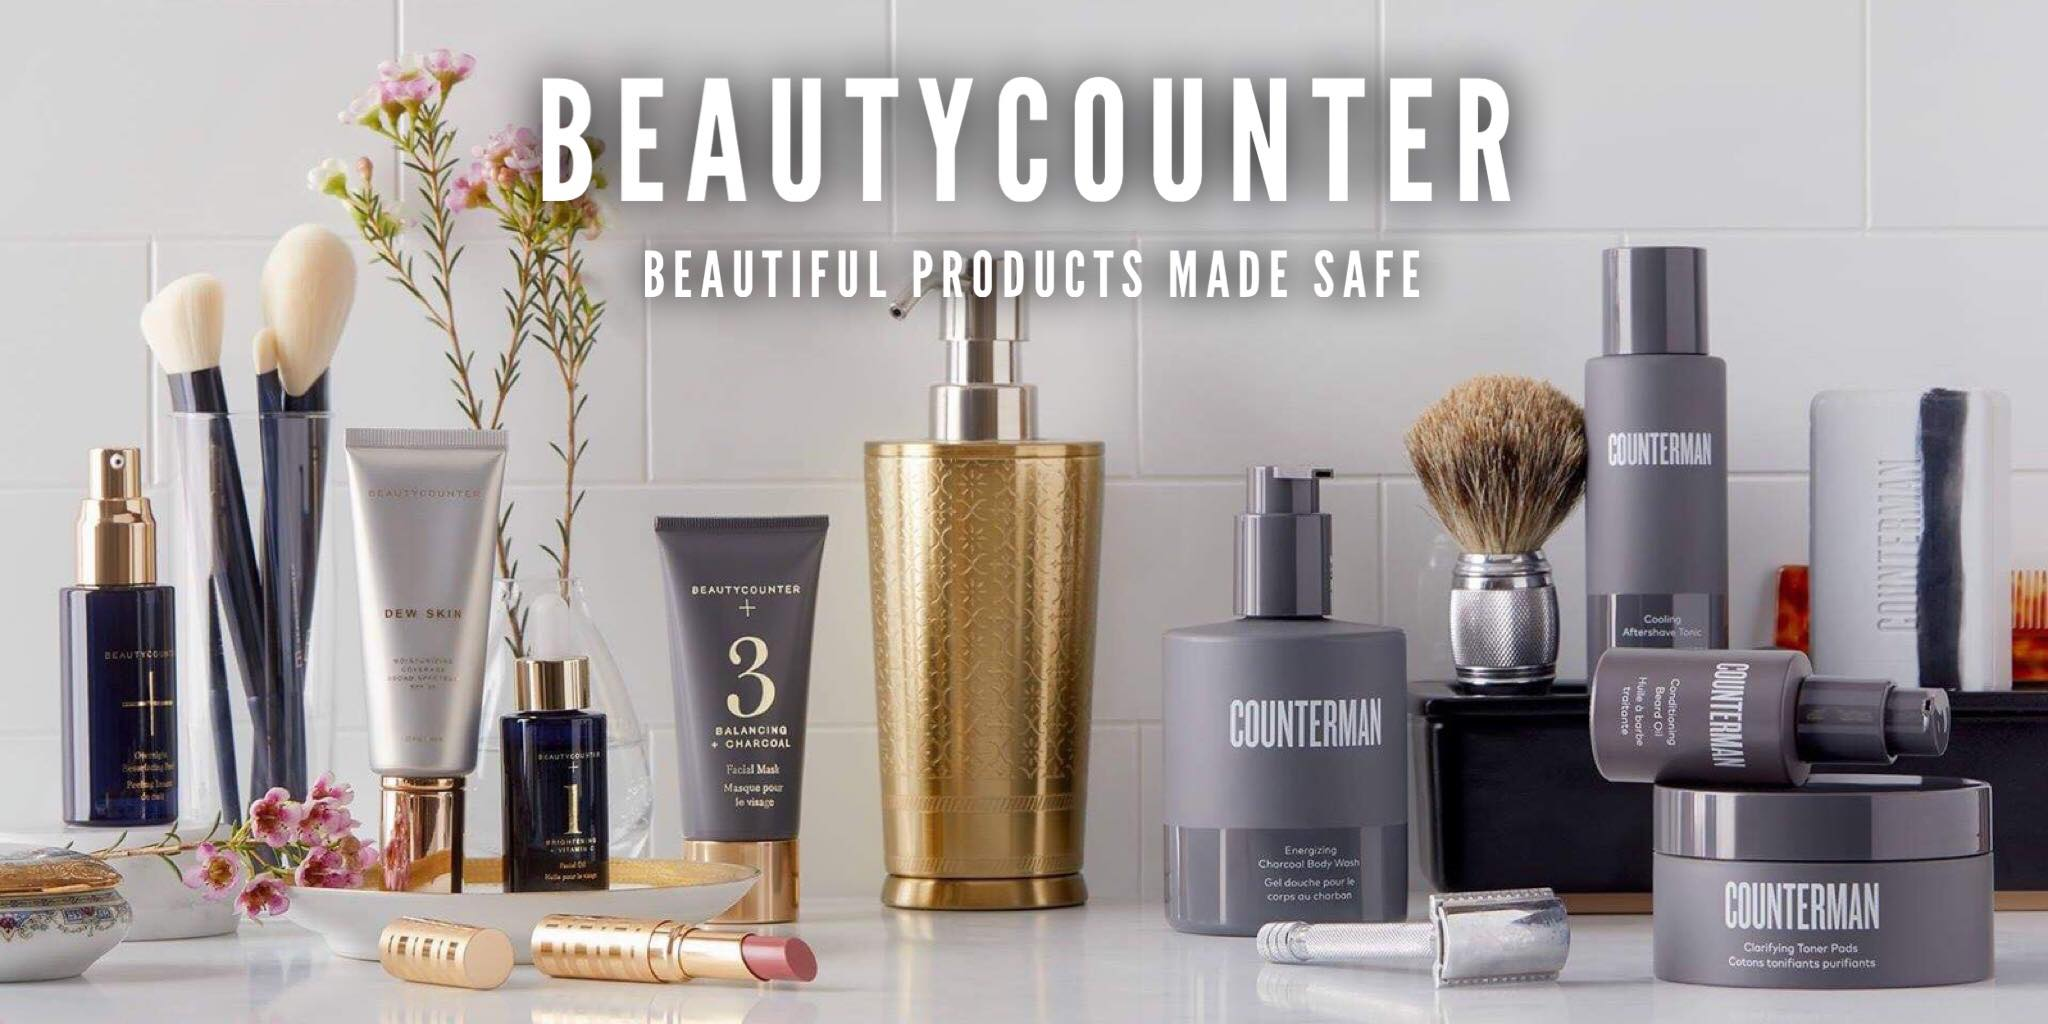 """Beautycounter is my favorite brand of safer products. Not only are their products safer and just as high performing as any luxury brand you've ever tried, but the company lobbies Washington for more legislation to ensure that no companies use ingredients that put our and our children's health in danger. Win-win-win!  I don't love all of their products, but there are many that I can't live without.  Their  Countertime """"Retinatural"""" retinol-mimicking, anti-aging skincare  is hands down the best skincare I've ever used, and some of their cosmetics are simply gorgeous. My favorites (in this order) are the  Dew Tinted Moisturizer with SPF 20 ,  Brilliant Brow Gel ,  Illuminating Cream Highlighter in Bronze  (it's basically contouring for dummies), their  lipsticks  and  lip gloss  is amazing, and I love the highly pigmented powders ( bronzers ,  eye shadows ,  blushes , and  luminous highlighters ) that have staying power unlike many of today's safer products.  Plus, it's a one-stop-shop. They also have a fabulous  safer men's line called Counterman , as well as safer products for  kids and babies !  Best part? They have a 60-day, no questions asked return policy, which means you can return anything if you don't love it."""